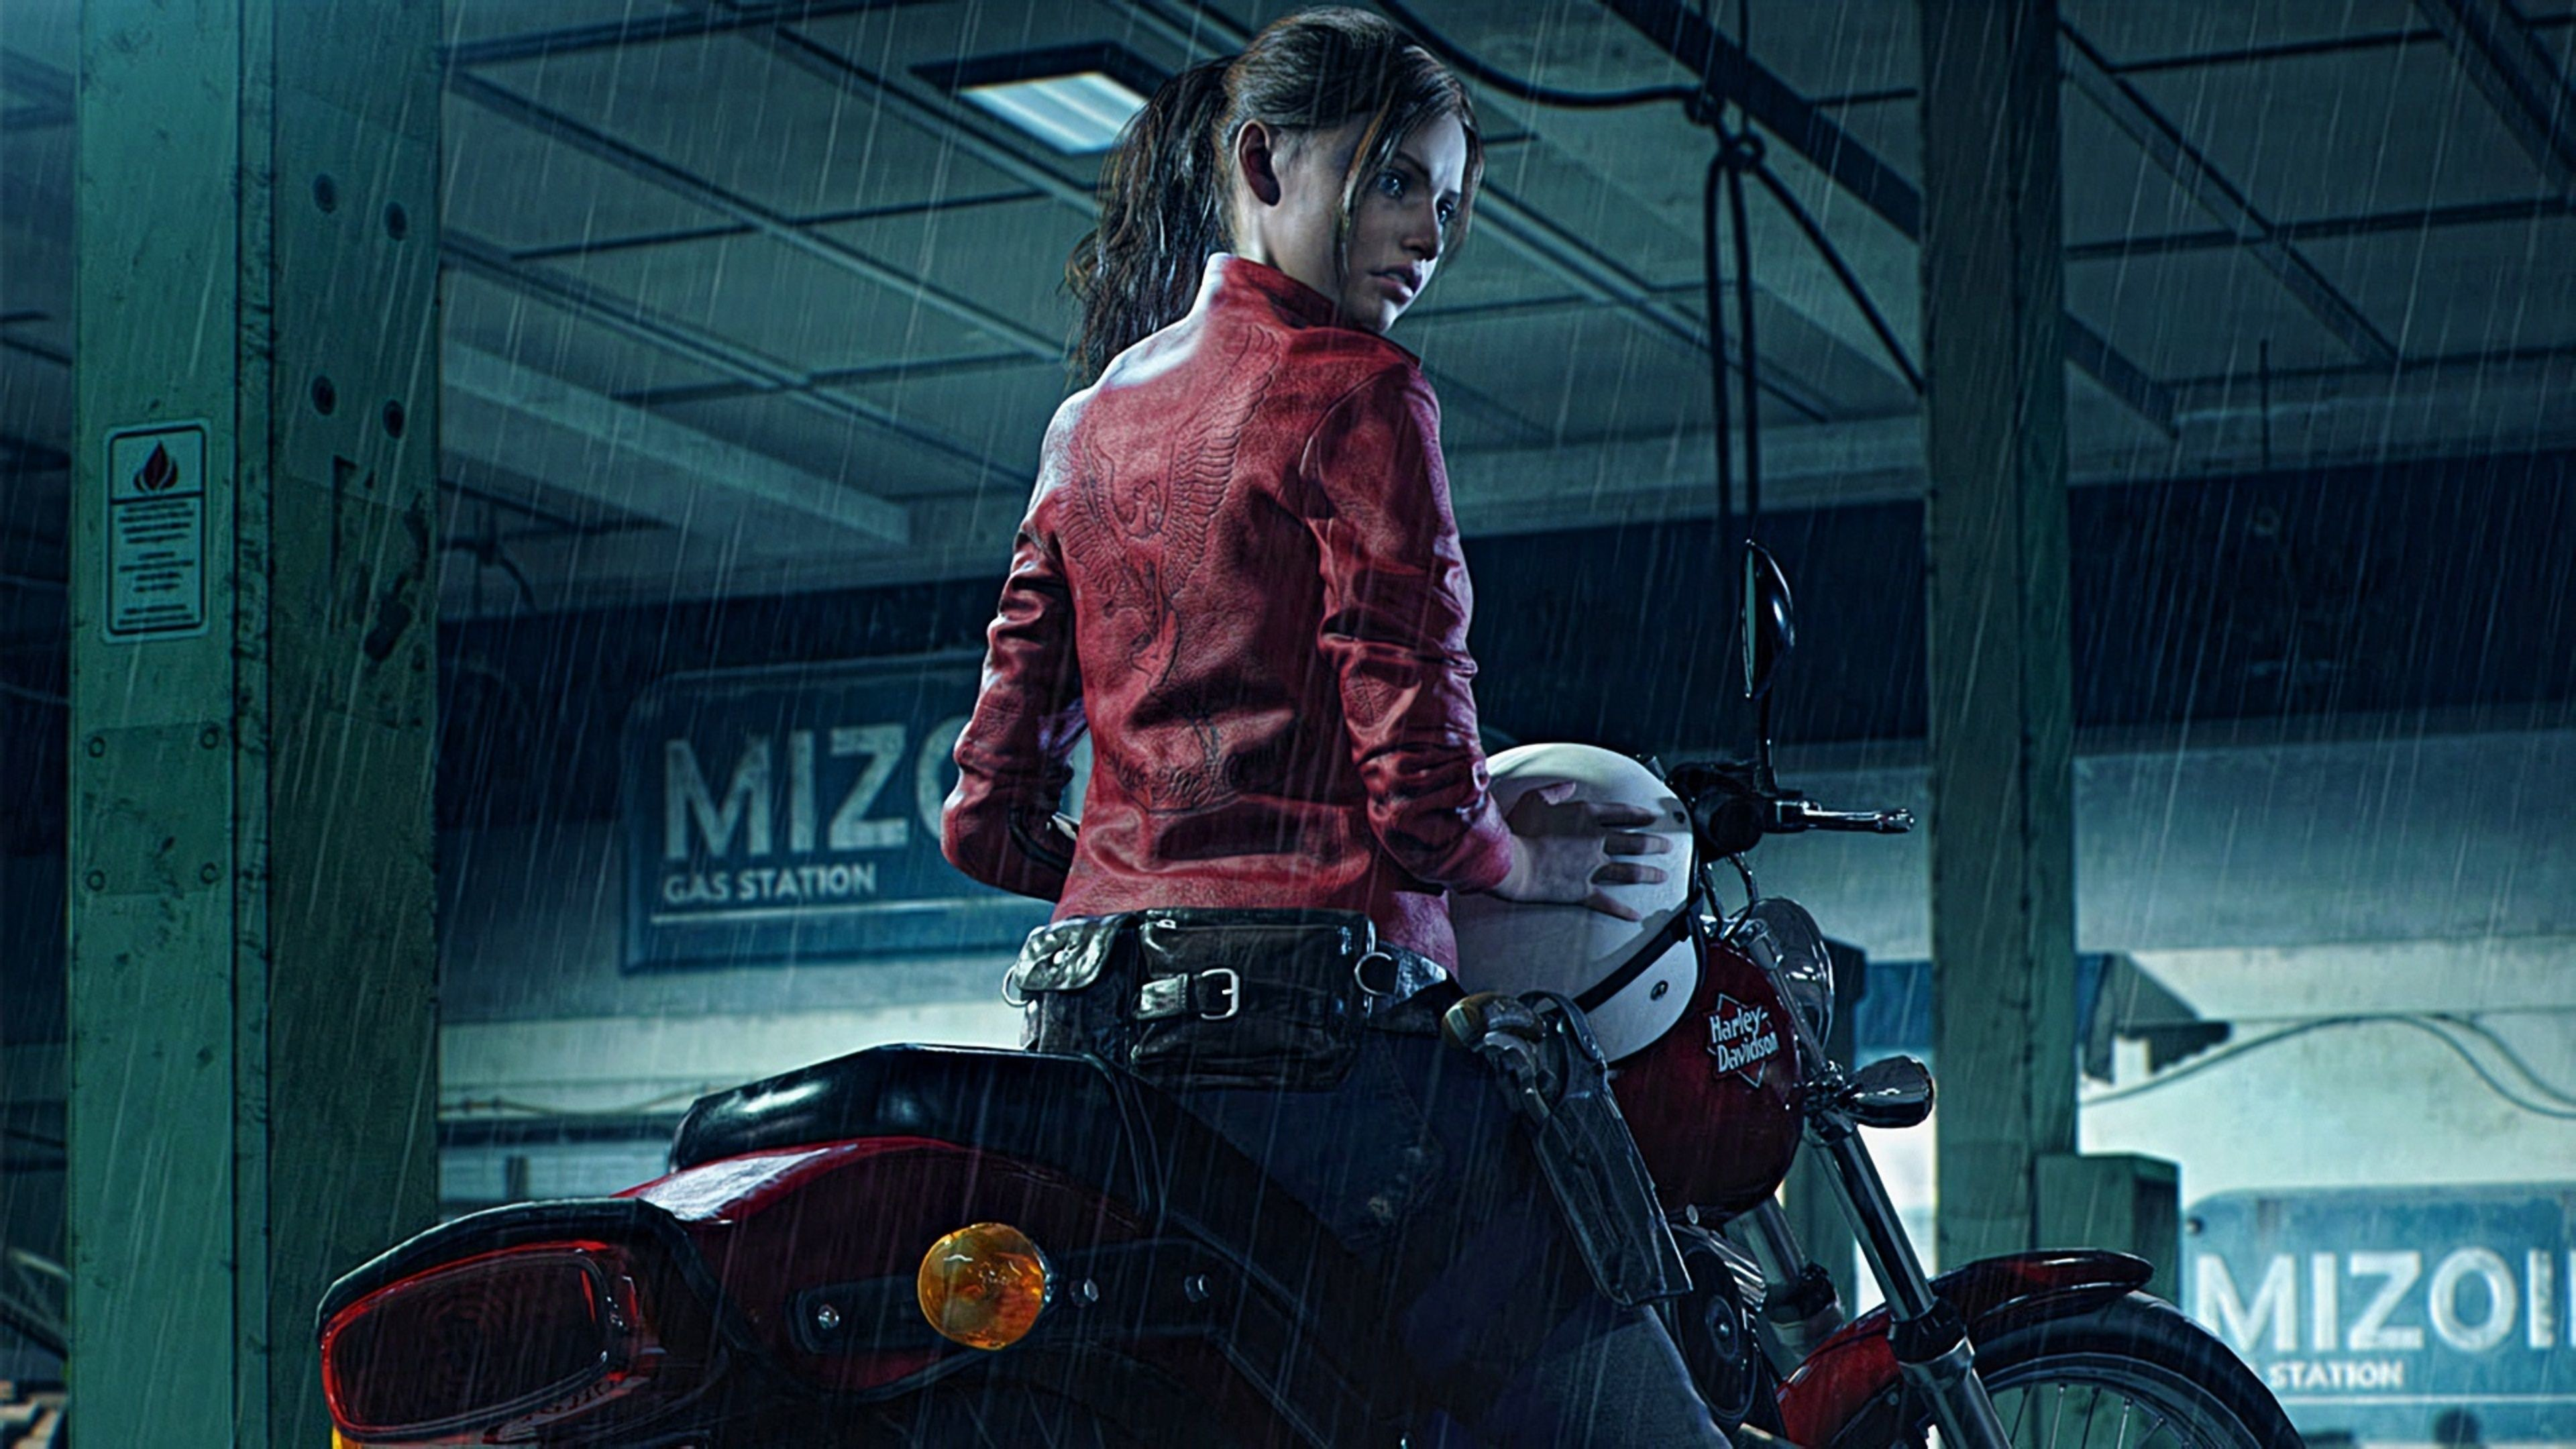 3840x2160, Resident Evil 2 2019 Claire Redfield Harley - Resident Evil 2 Remake Claire Redfield , HD Wallpaper & Backgrounds